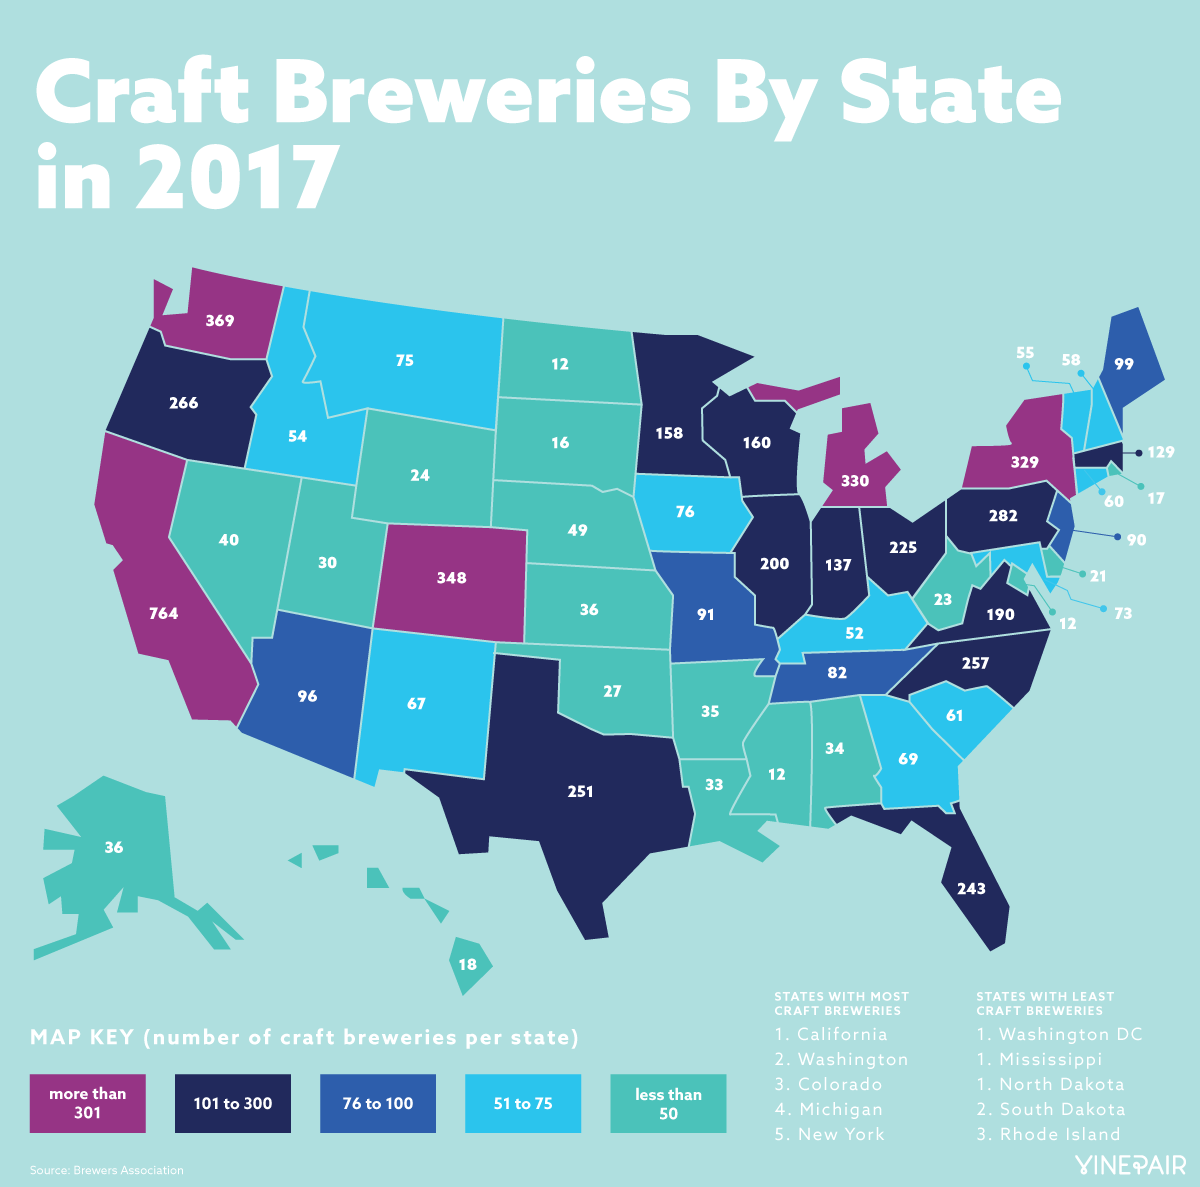 Craft Breweries By State in 2017